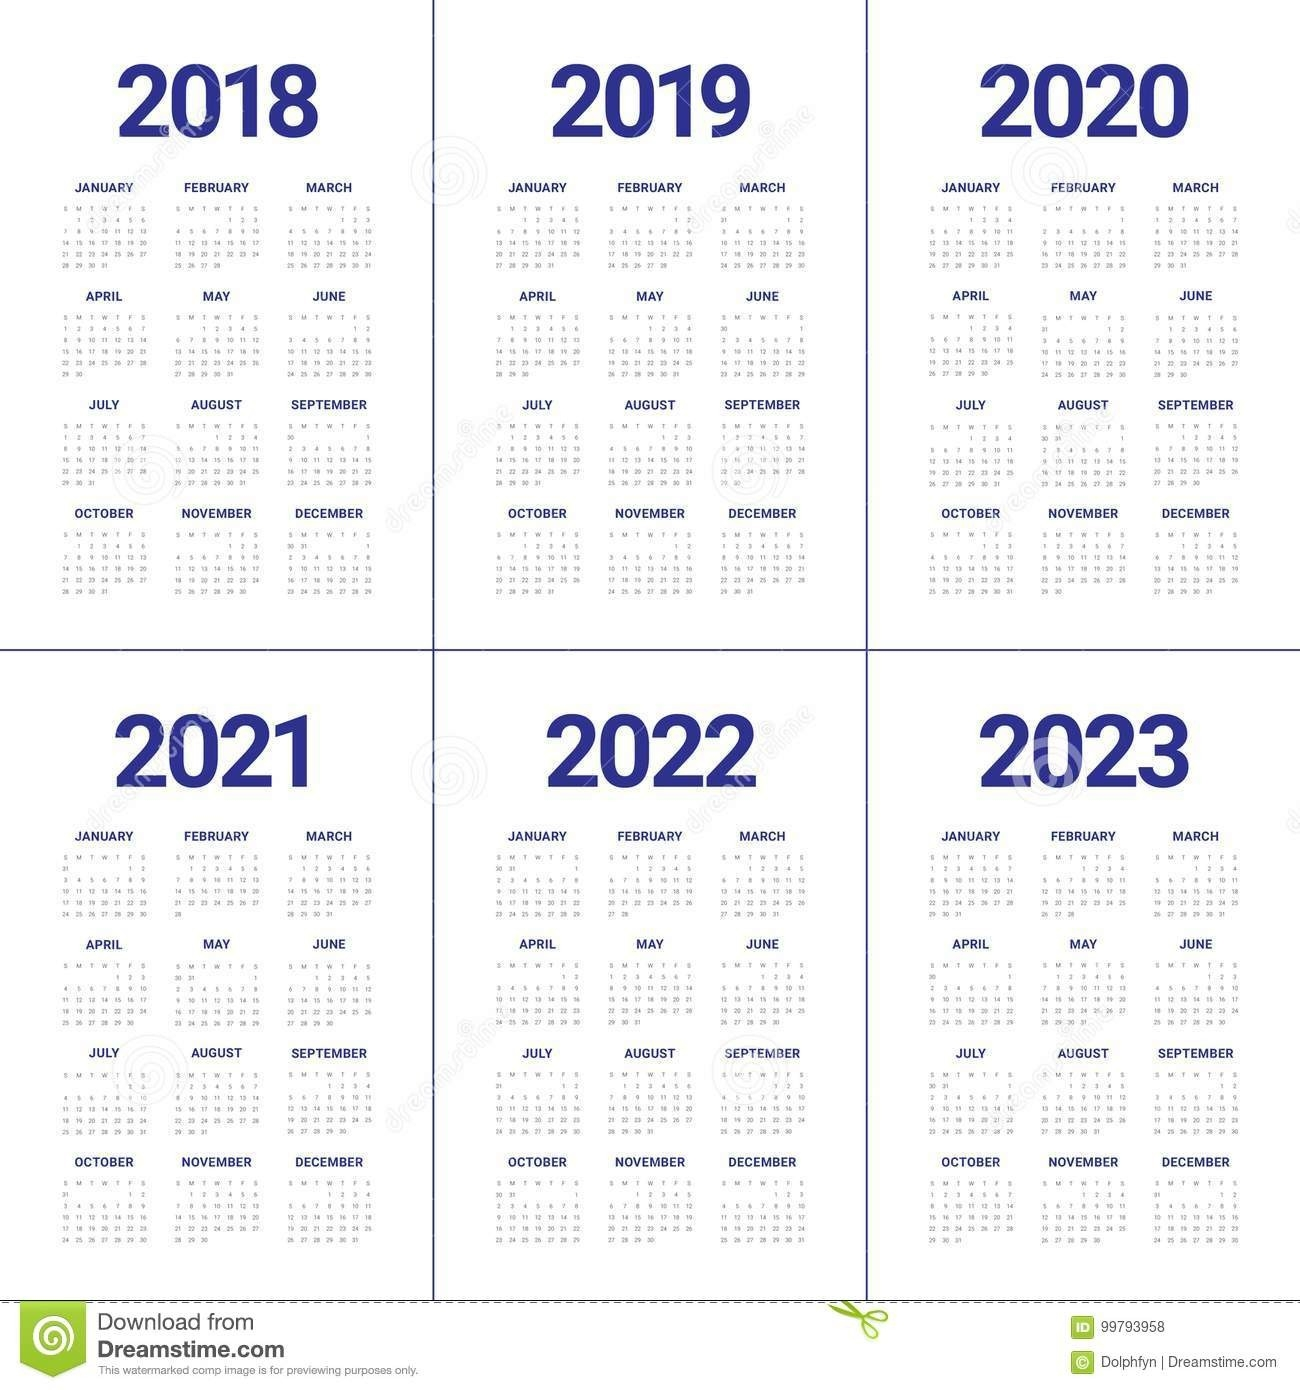 Year 2018 2019 2020 2021 2022 2023 Calendar Vector Stock Vector - Illustration Of 2023, Month-3 Year Calendar 2021 To 2023